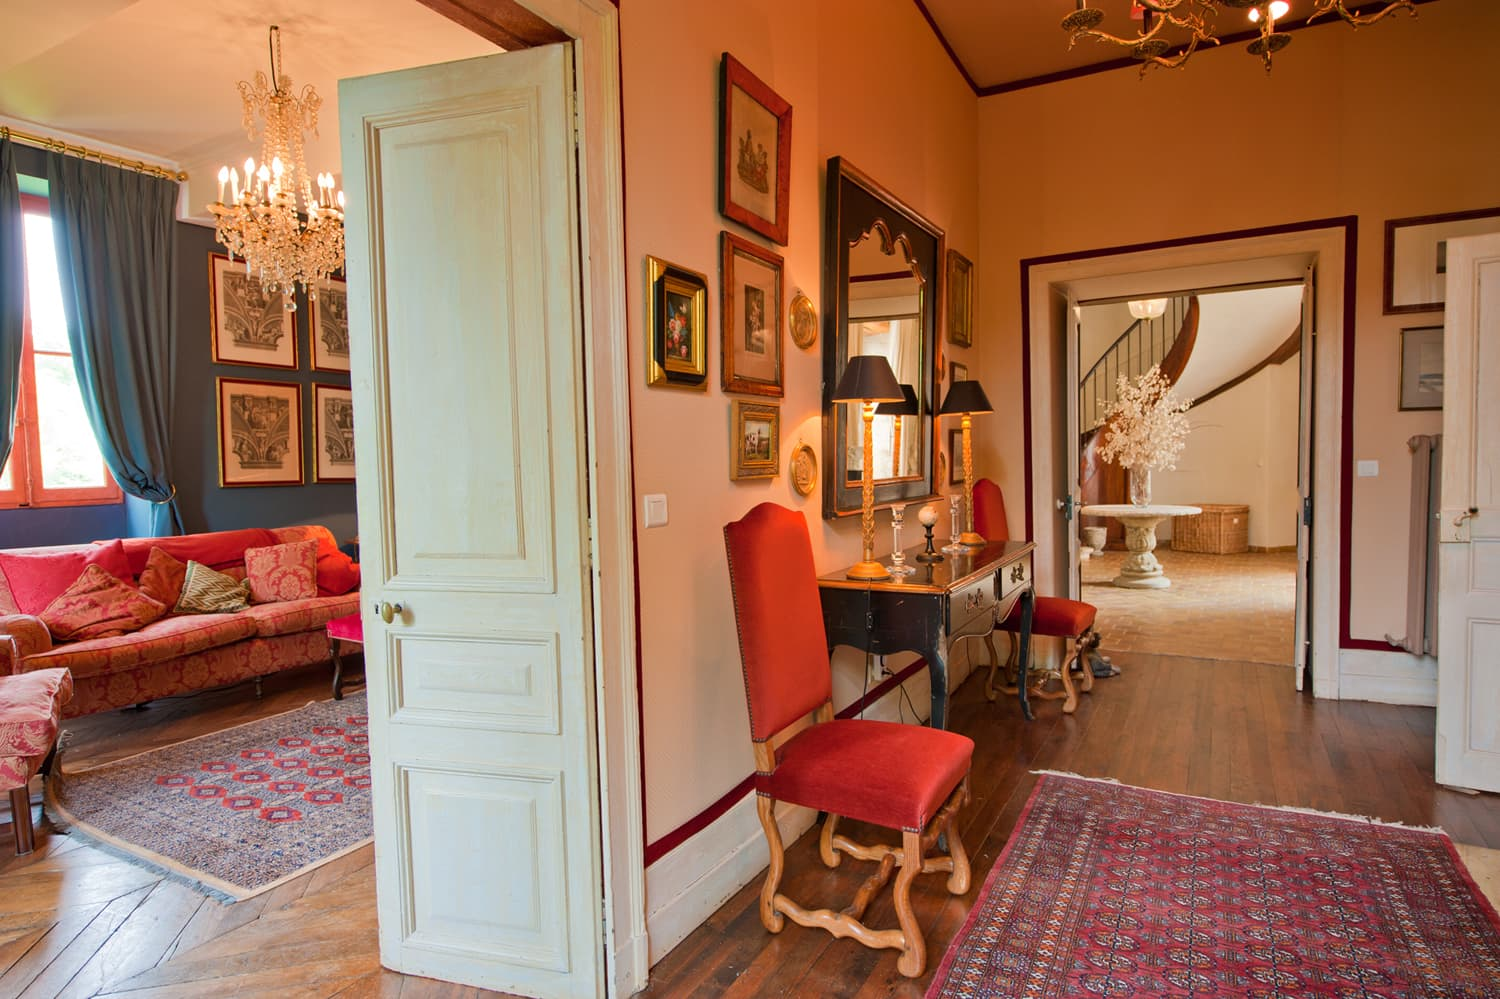 Hallway in South West France rental accommodation